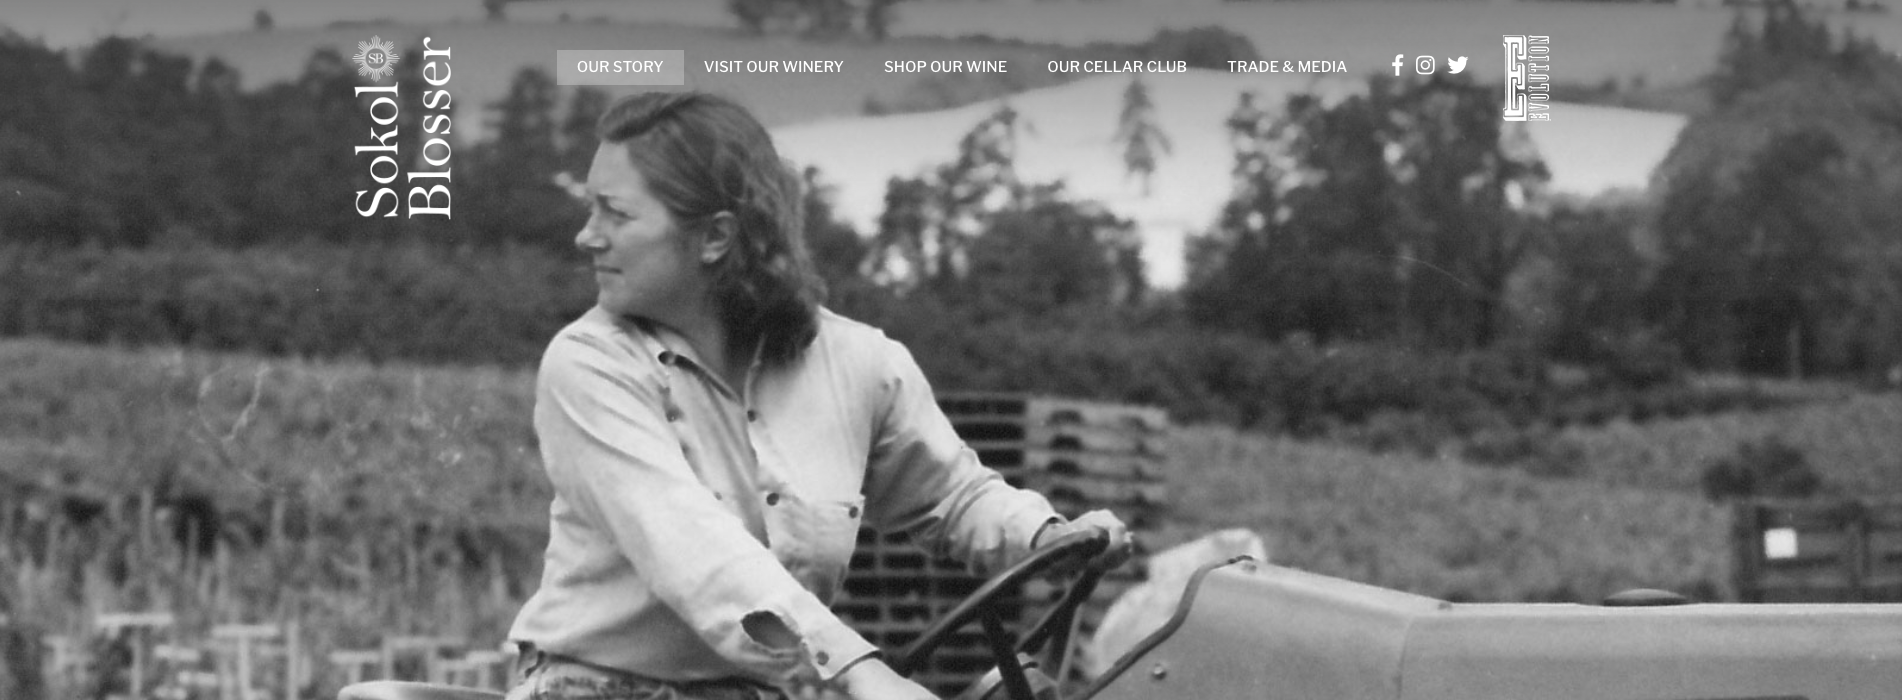 Susan Sokol Blosser on a tractor, a header image from the Sokol Blosser site